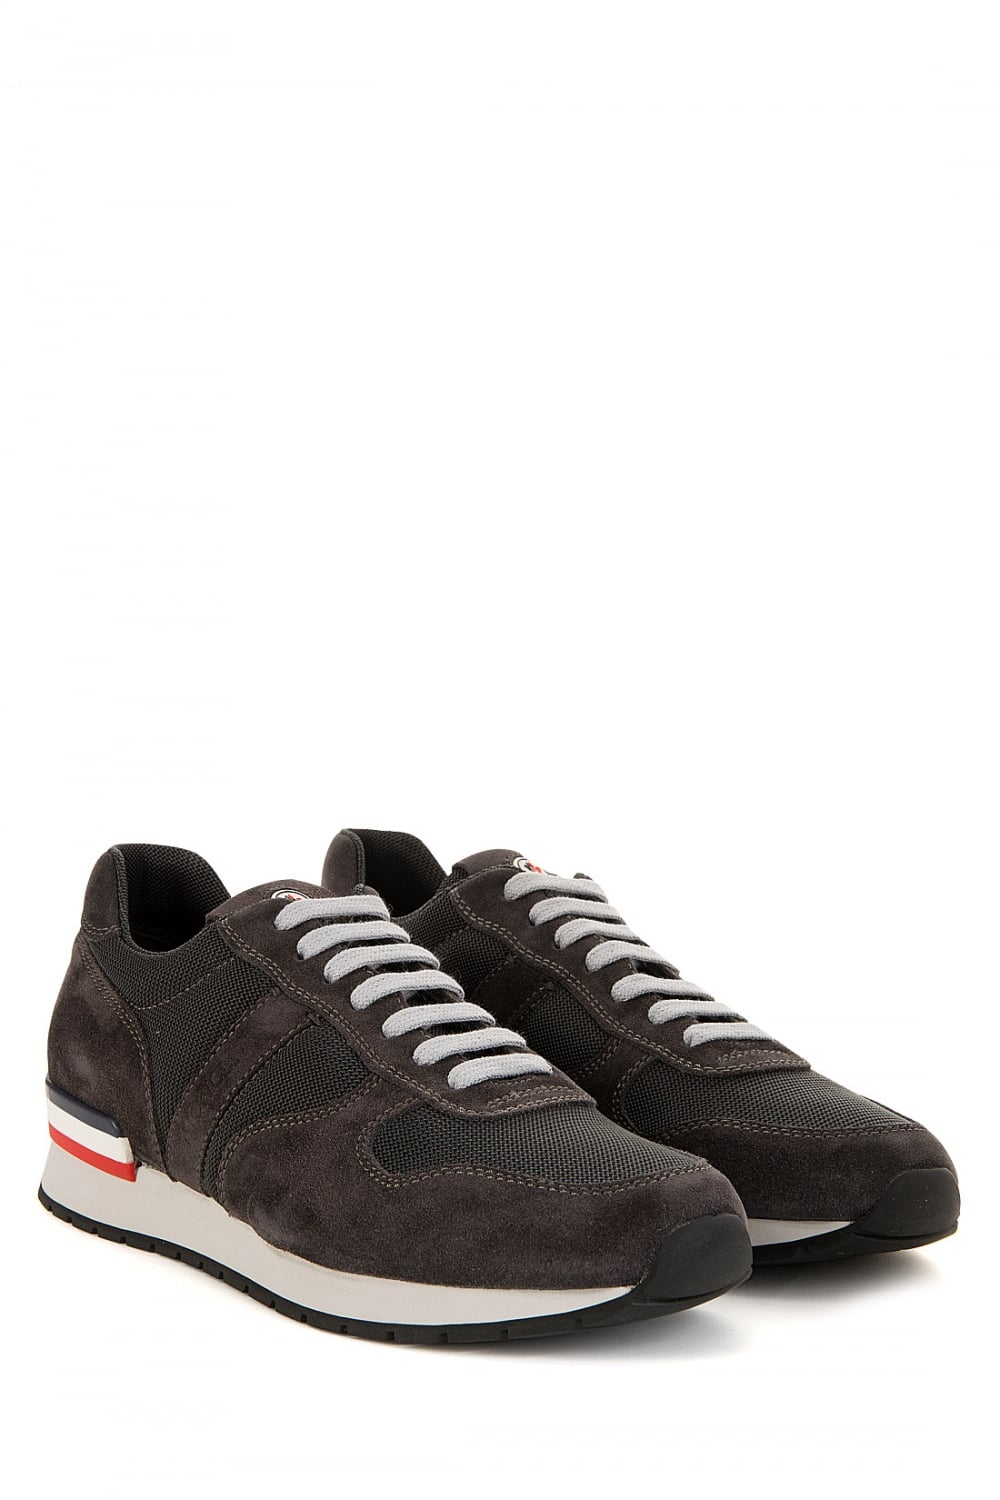 MONCLER Moncler Montego Grey Trainers